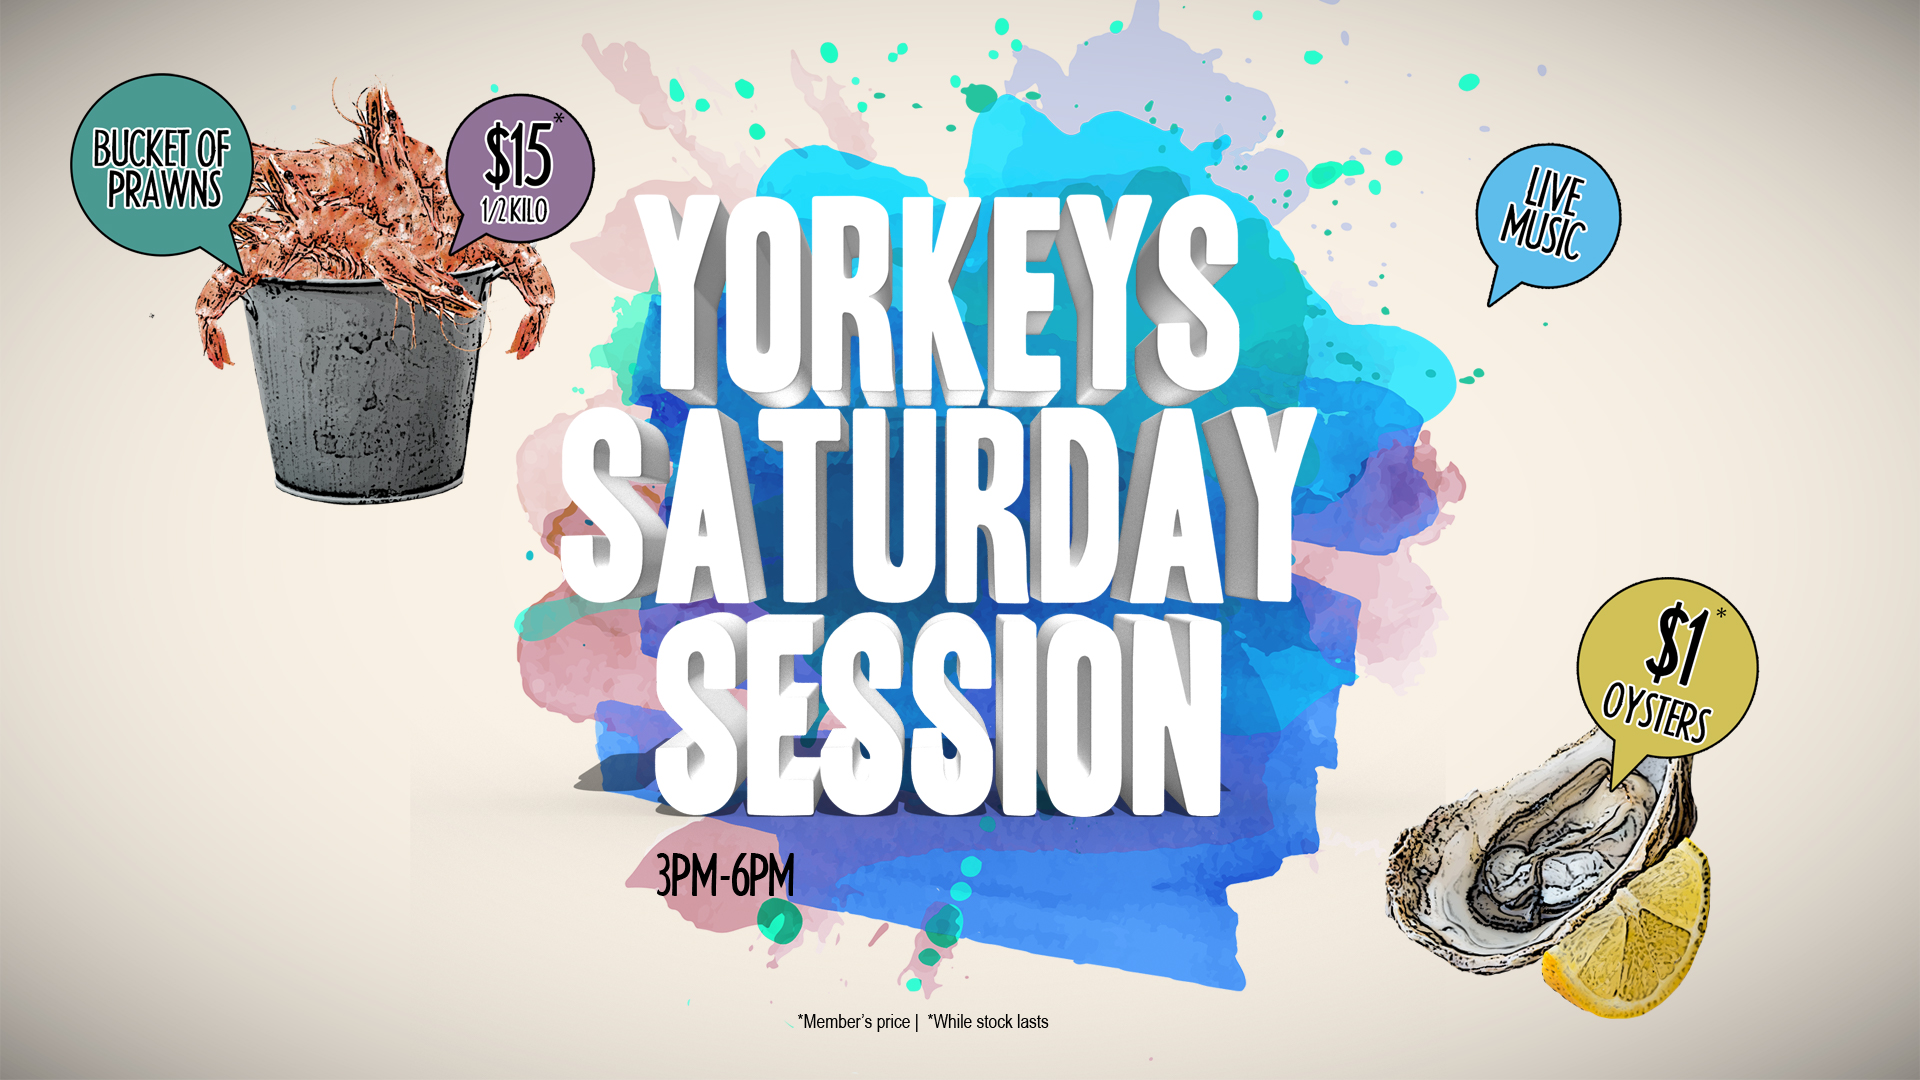 Saturday session_TV02